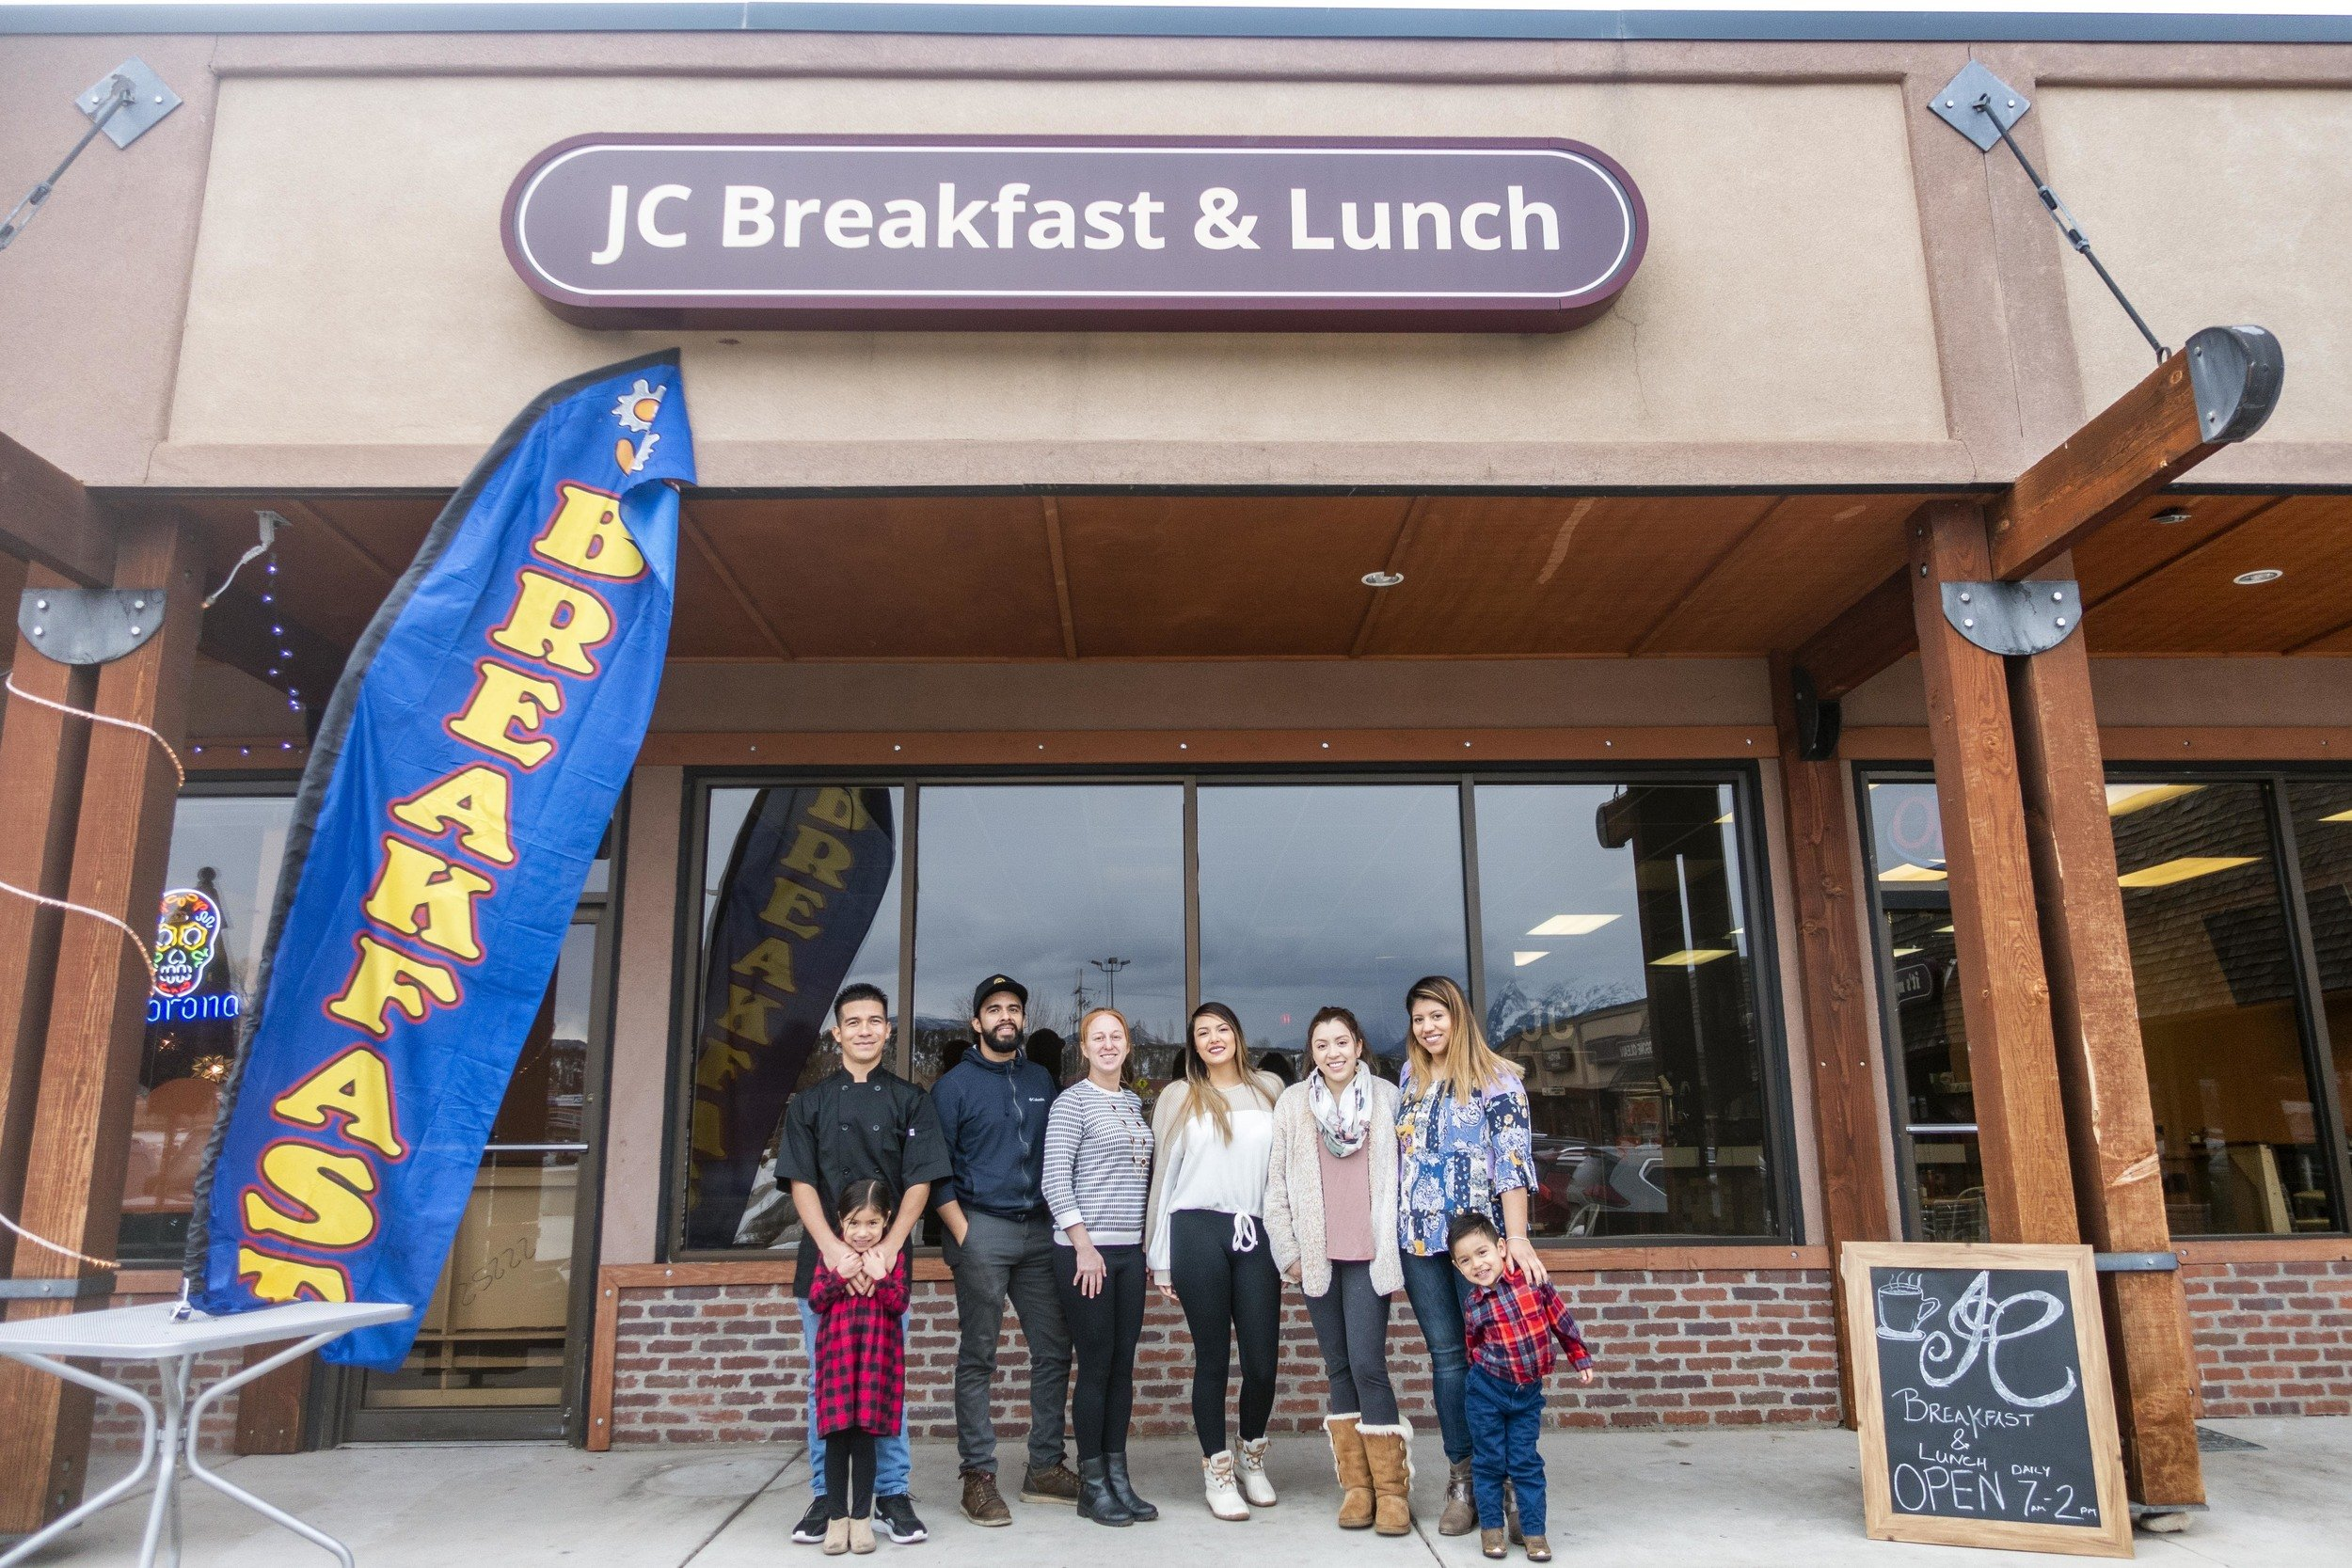 New restaurant offers diverse breakfast and lunch thumbnail